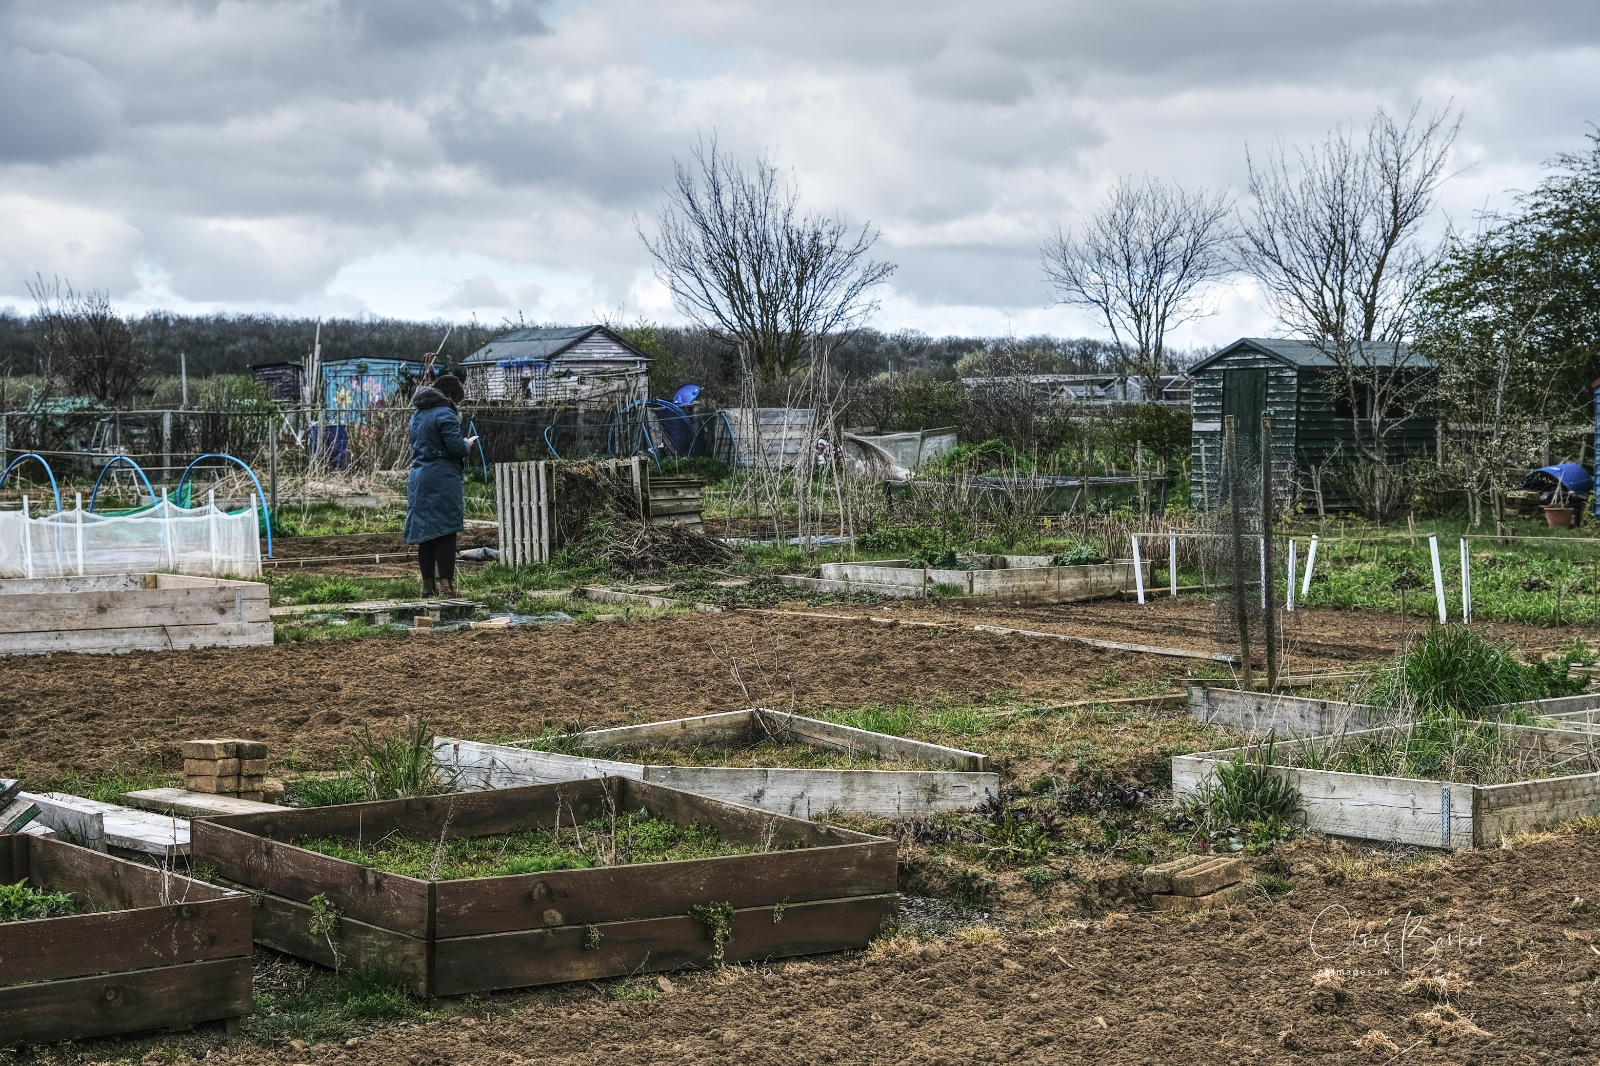 Allotments in the countryside with a lady in a coat